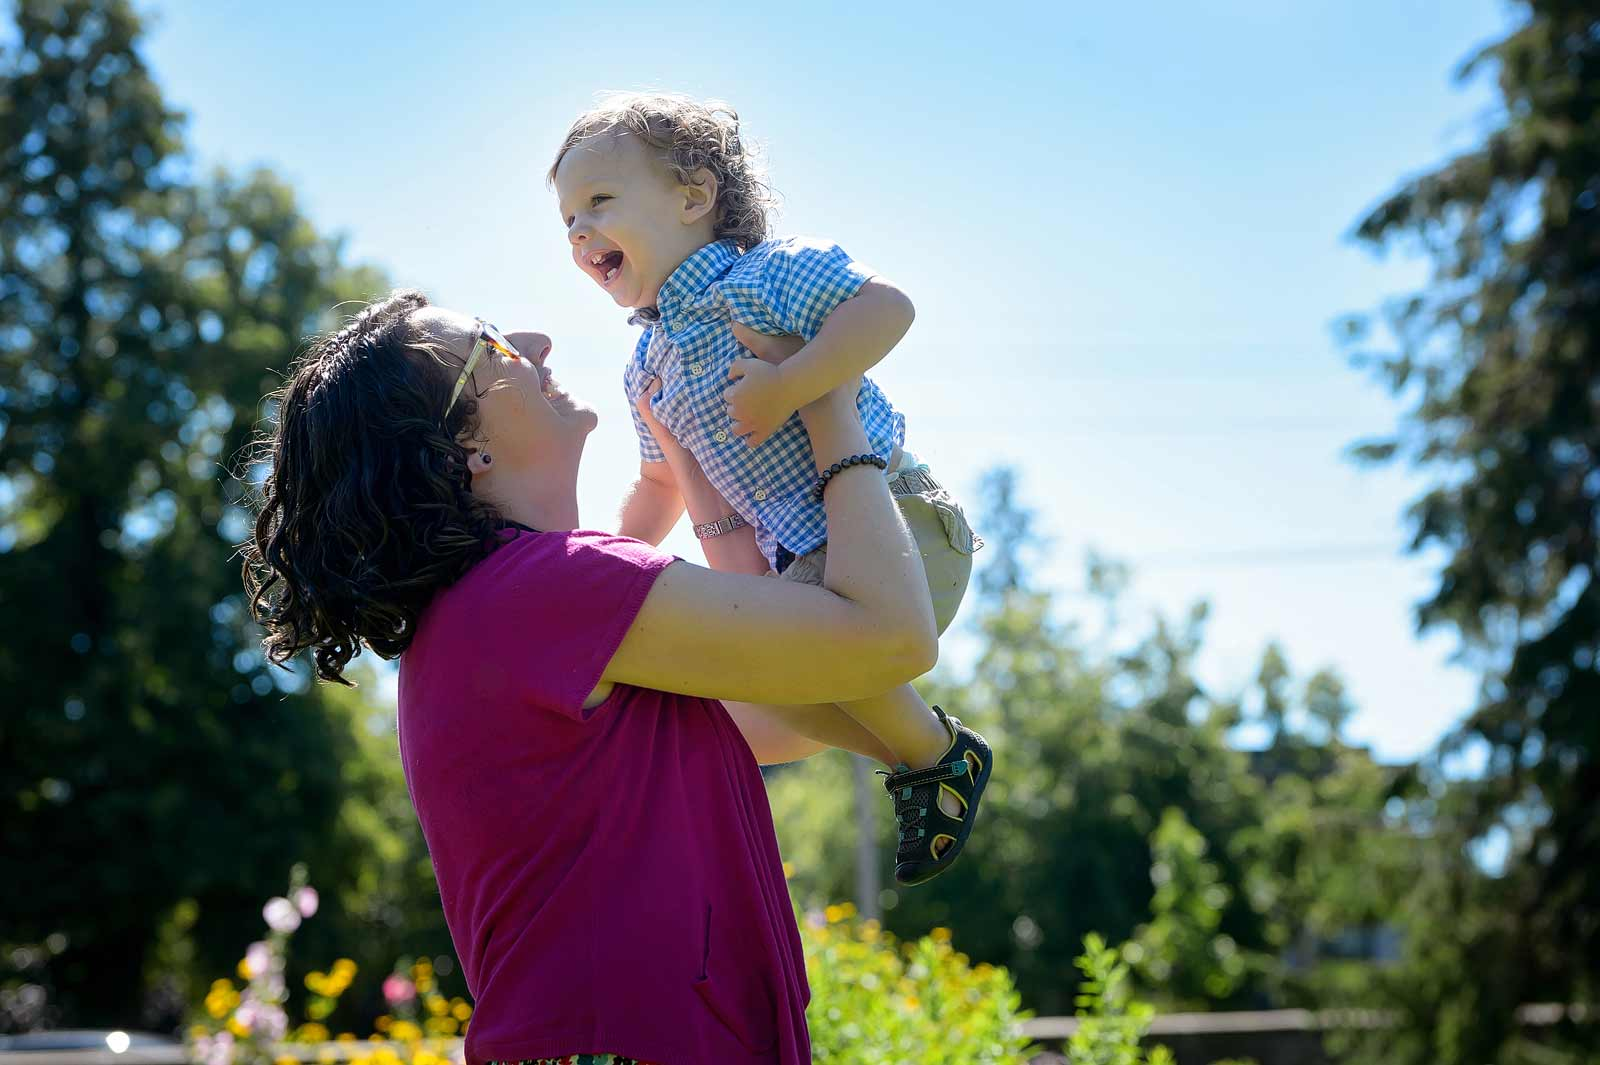 Mom throwing her young toddler son in the air for laughs at Maplelawn gardens in the summer